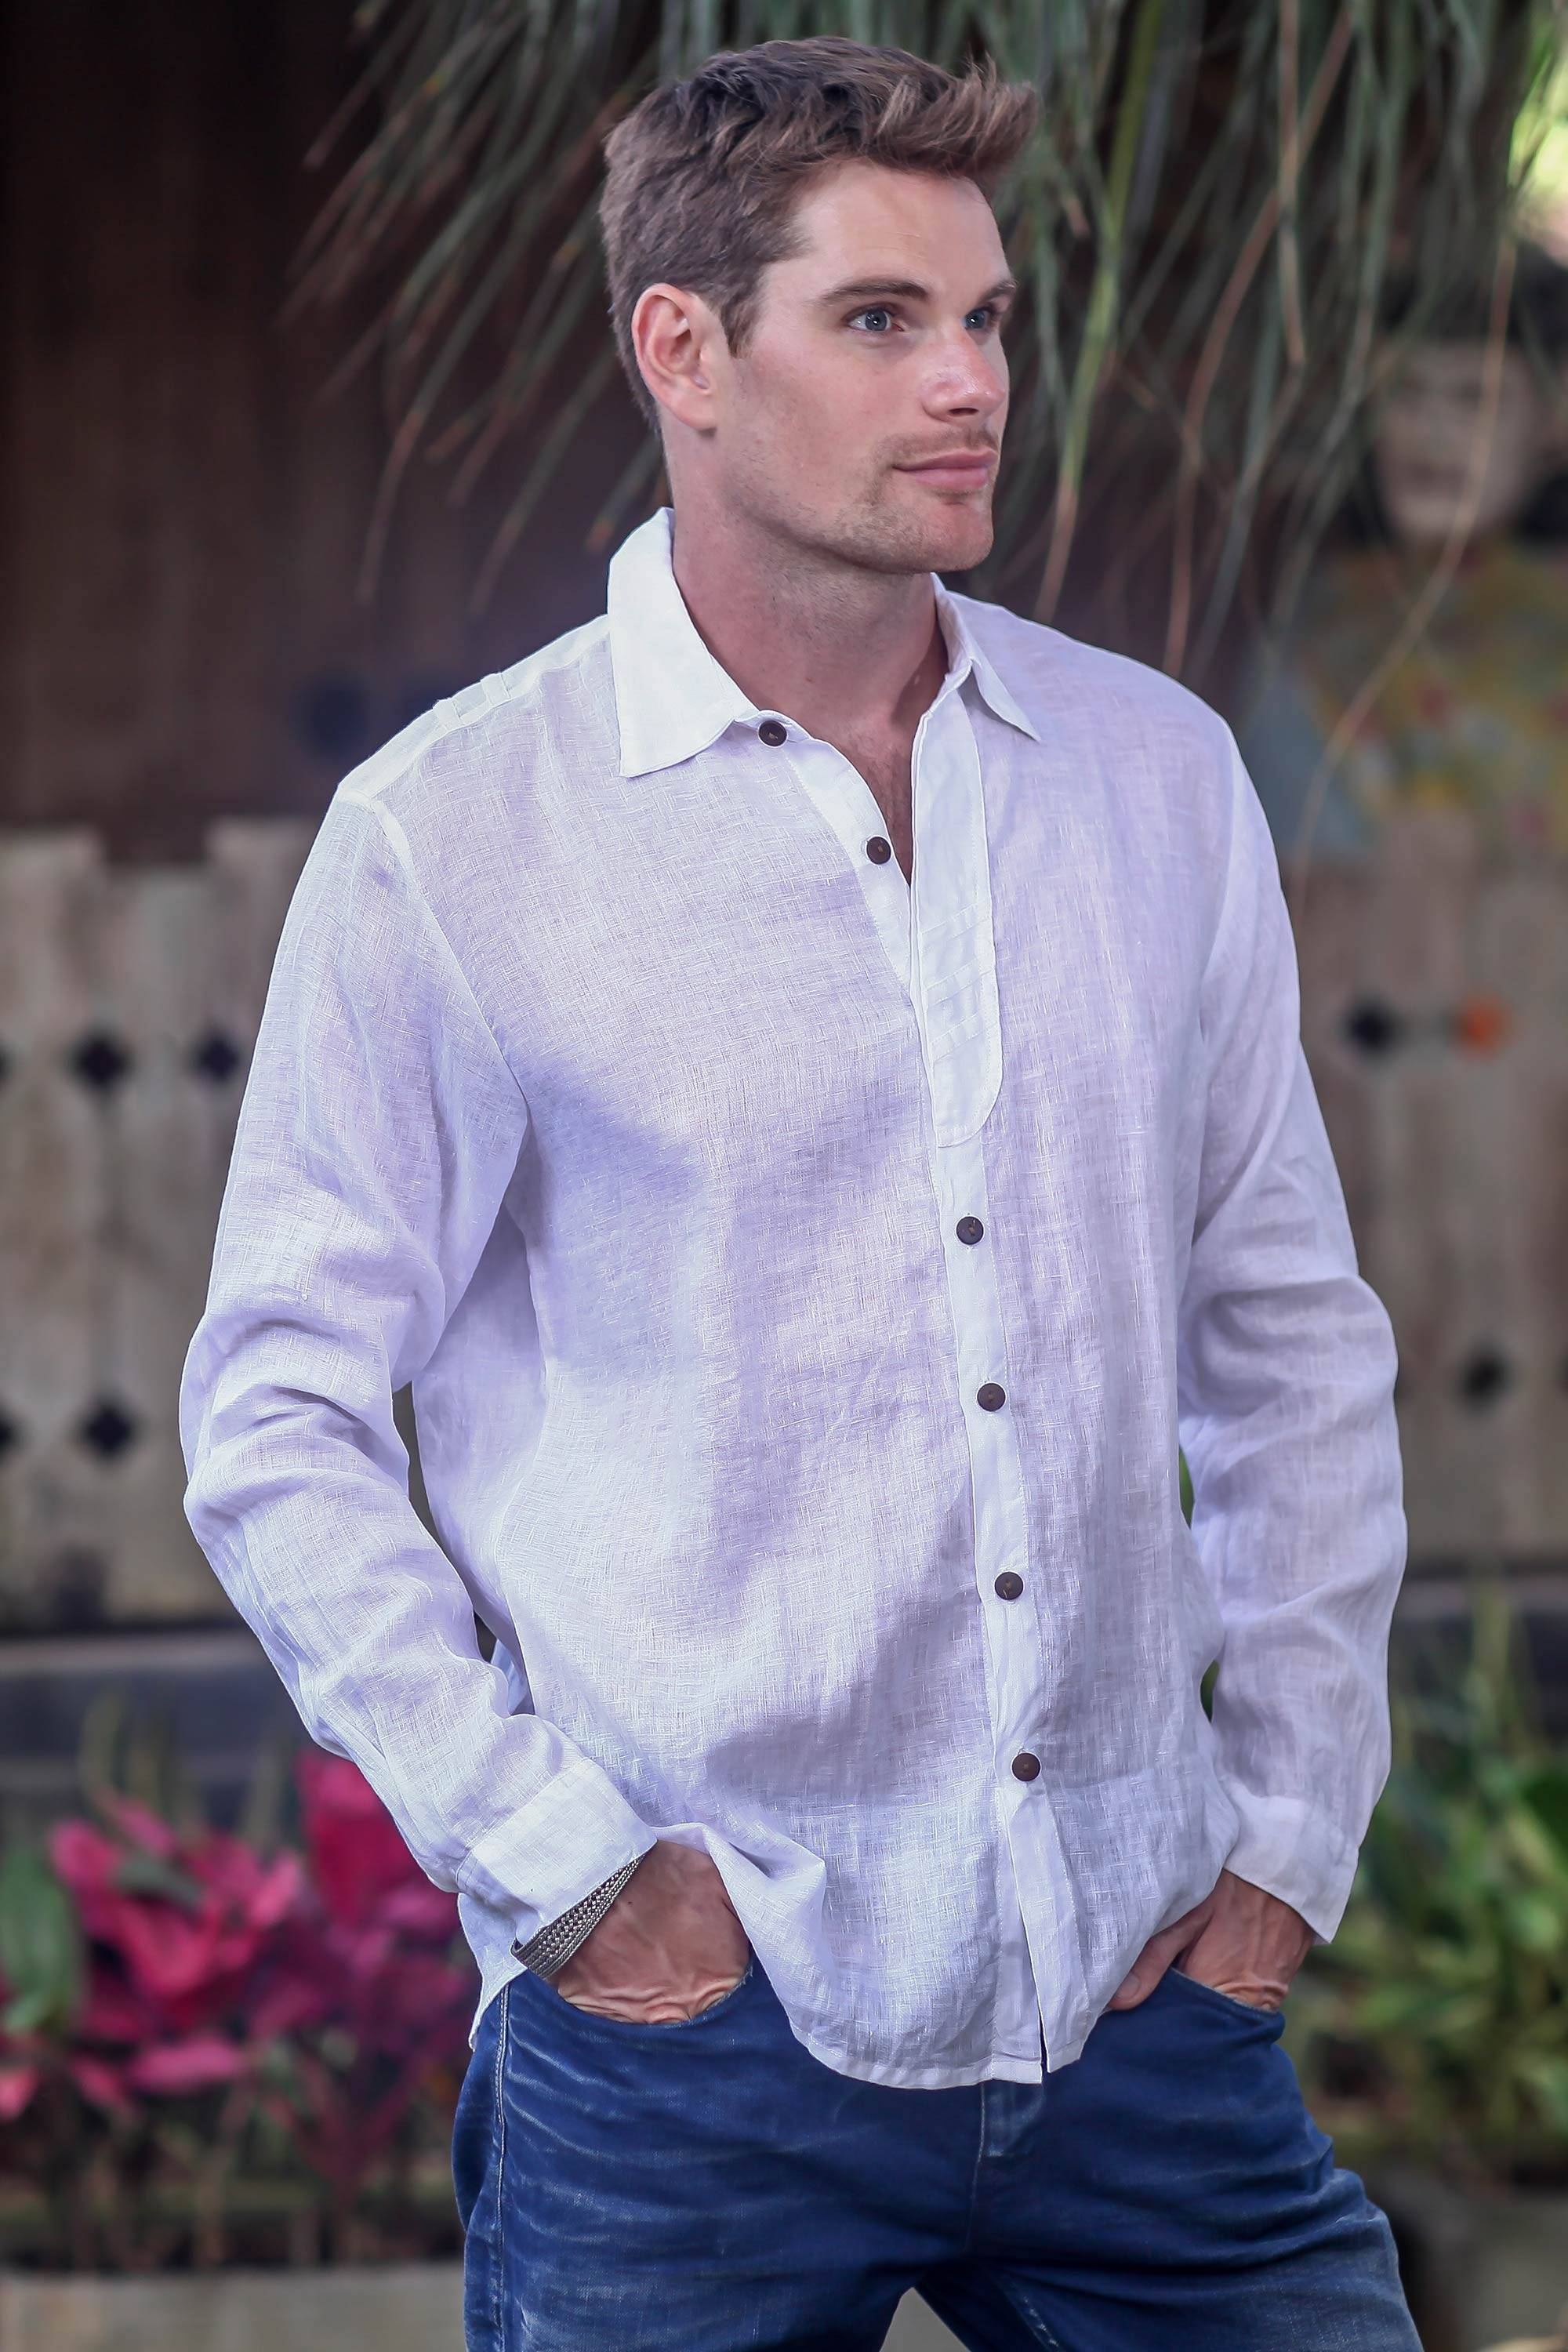 Lightweight Sheer White Cotton Long-Sleeved Shirt for Men - Pure ... 77fea4690c2